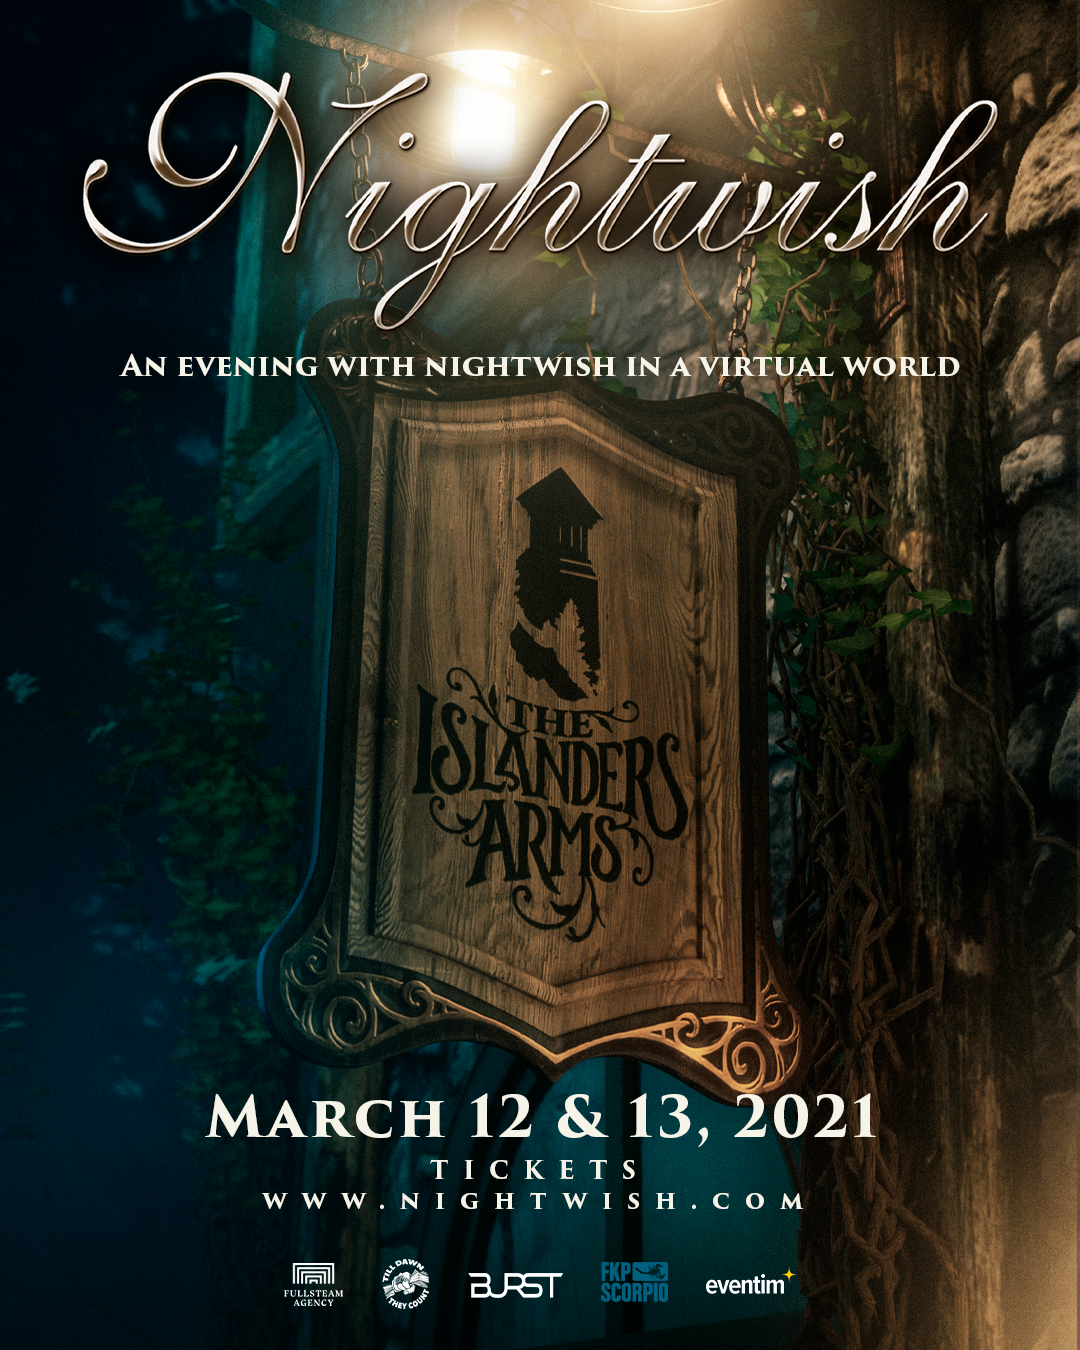 nightwish-kuendigen-eine-human-ii-nature-welttournee-in-virtual-reality-an